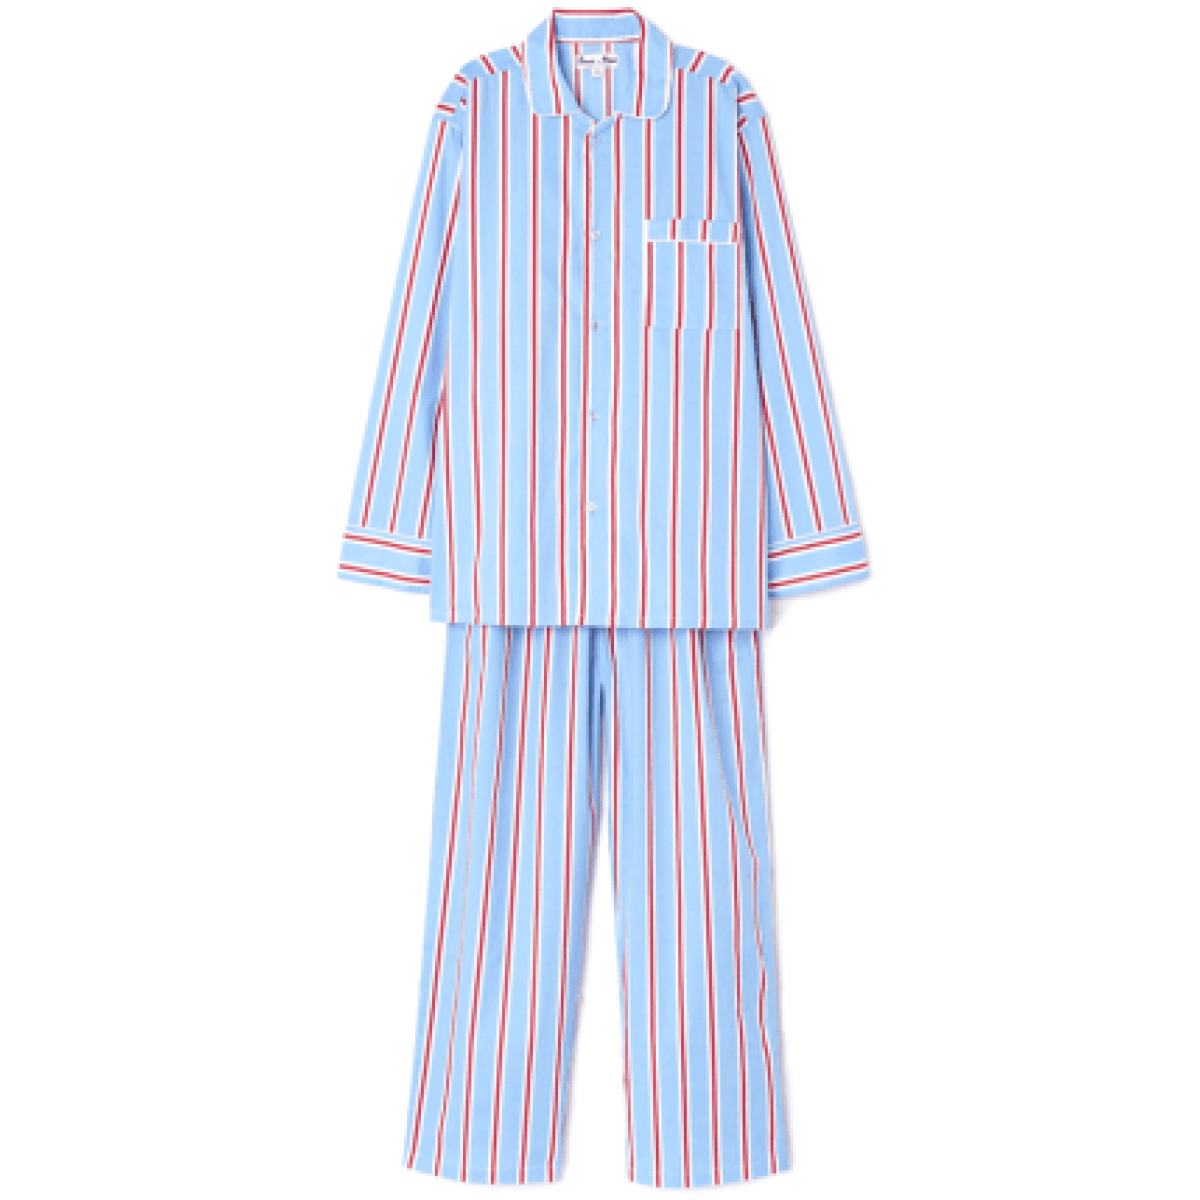 goop x Sant and Abel Mens Pajama Set